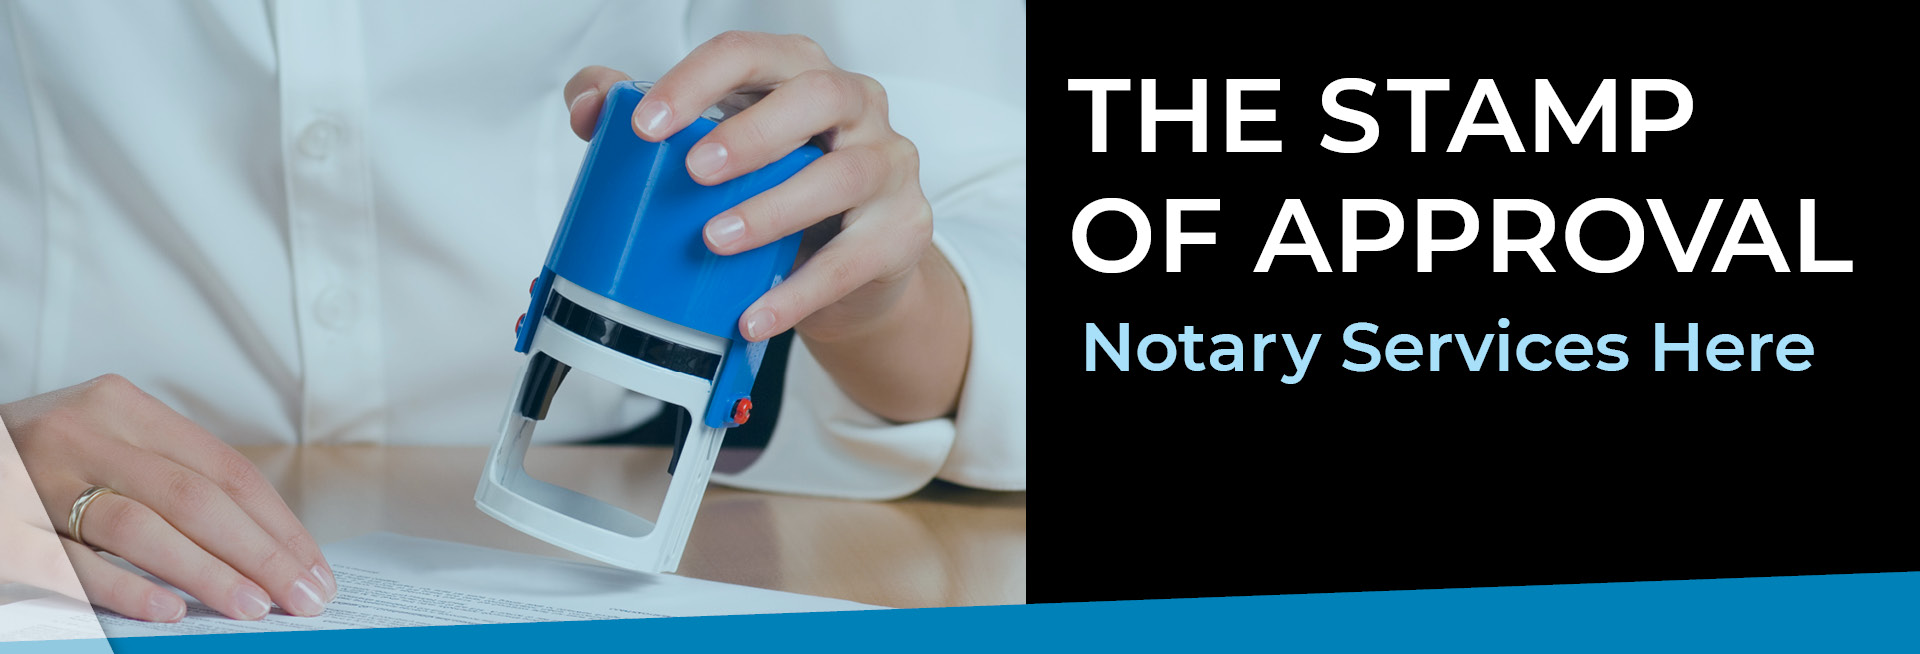 The Stamp of Approval - Notary Services Here